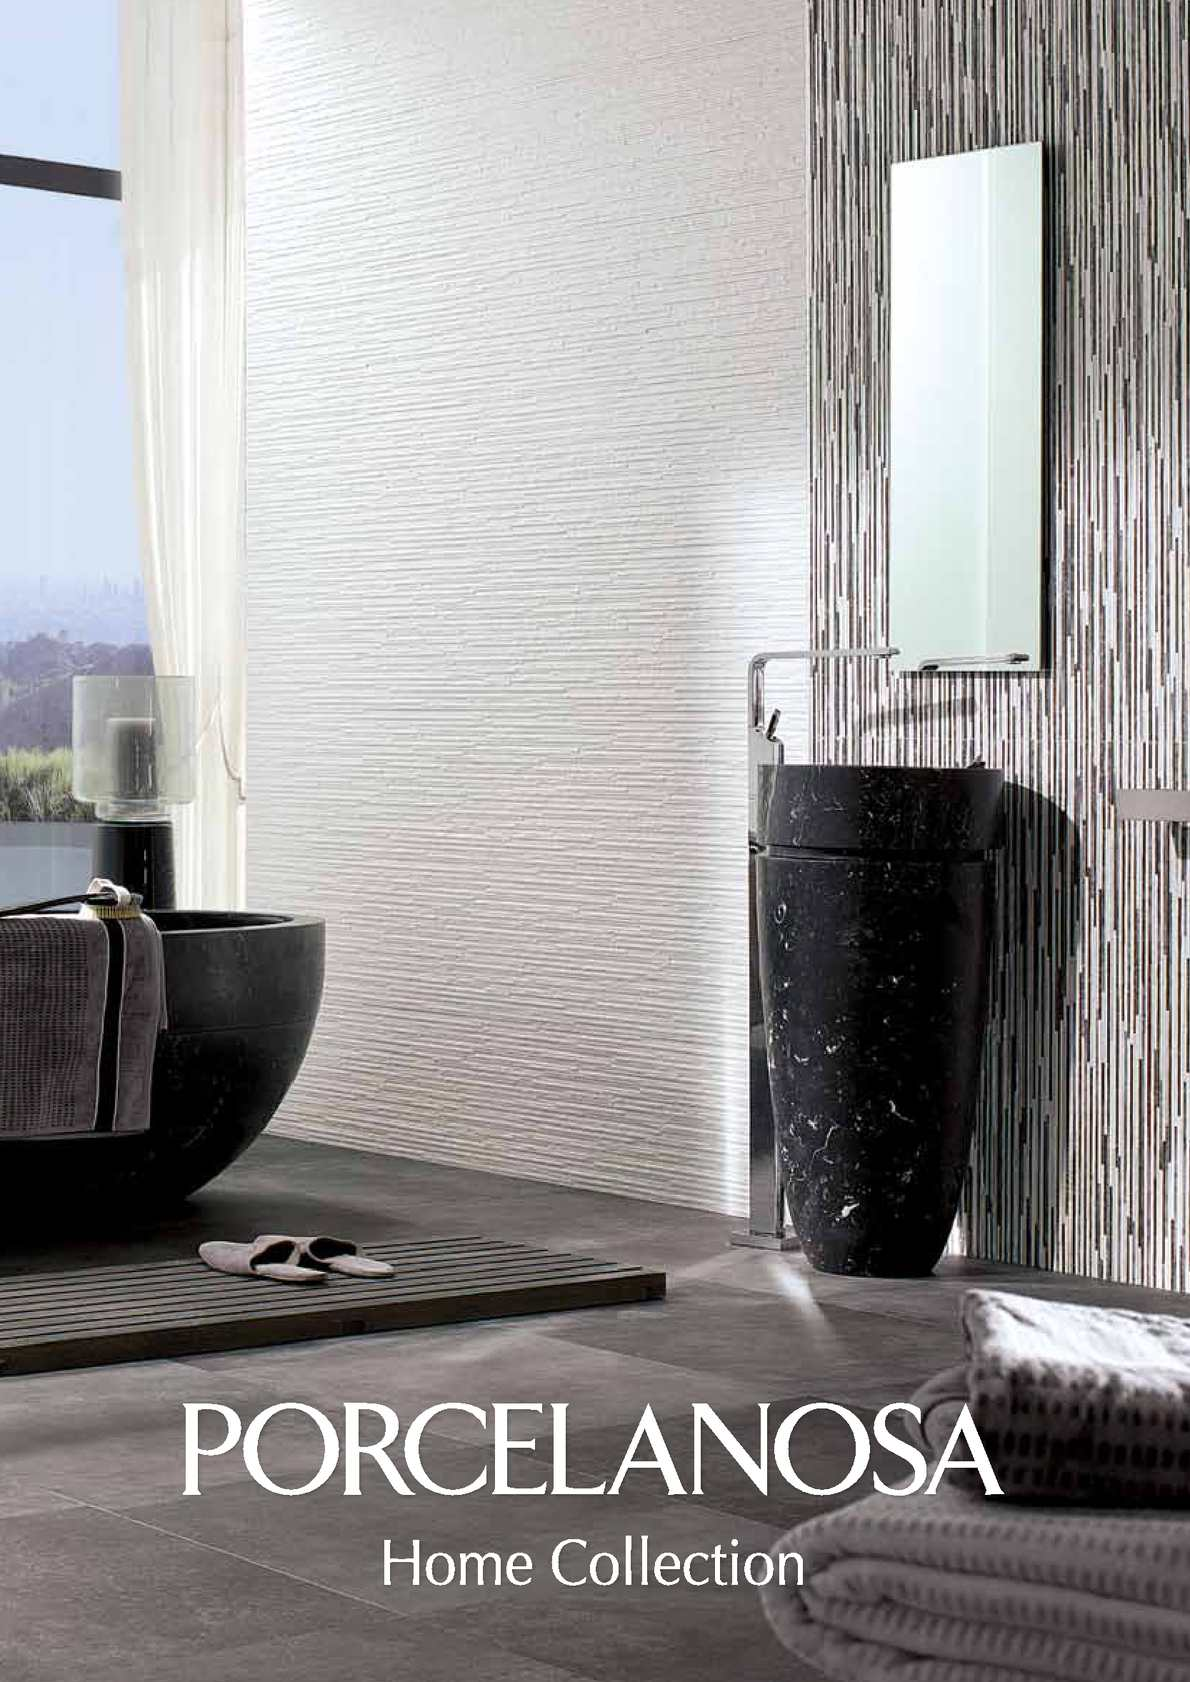 Calam o catalogue porcelanosa home collection for Carrelage porcelanosa catalogue